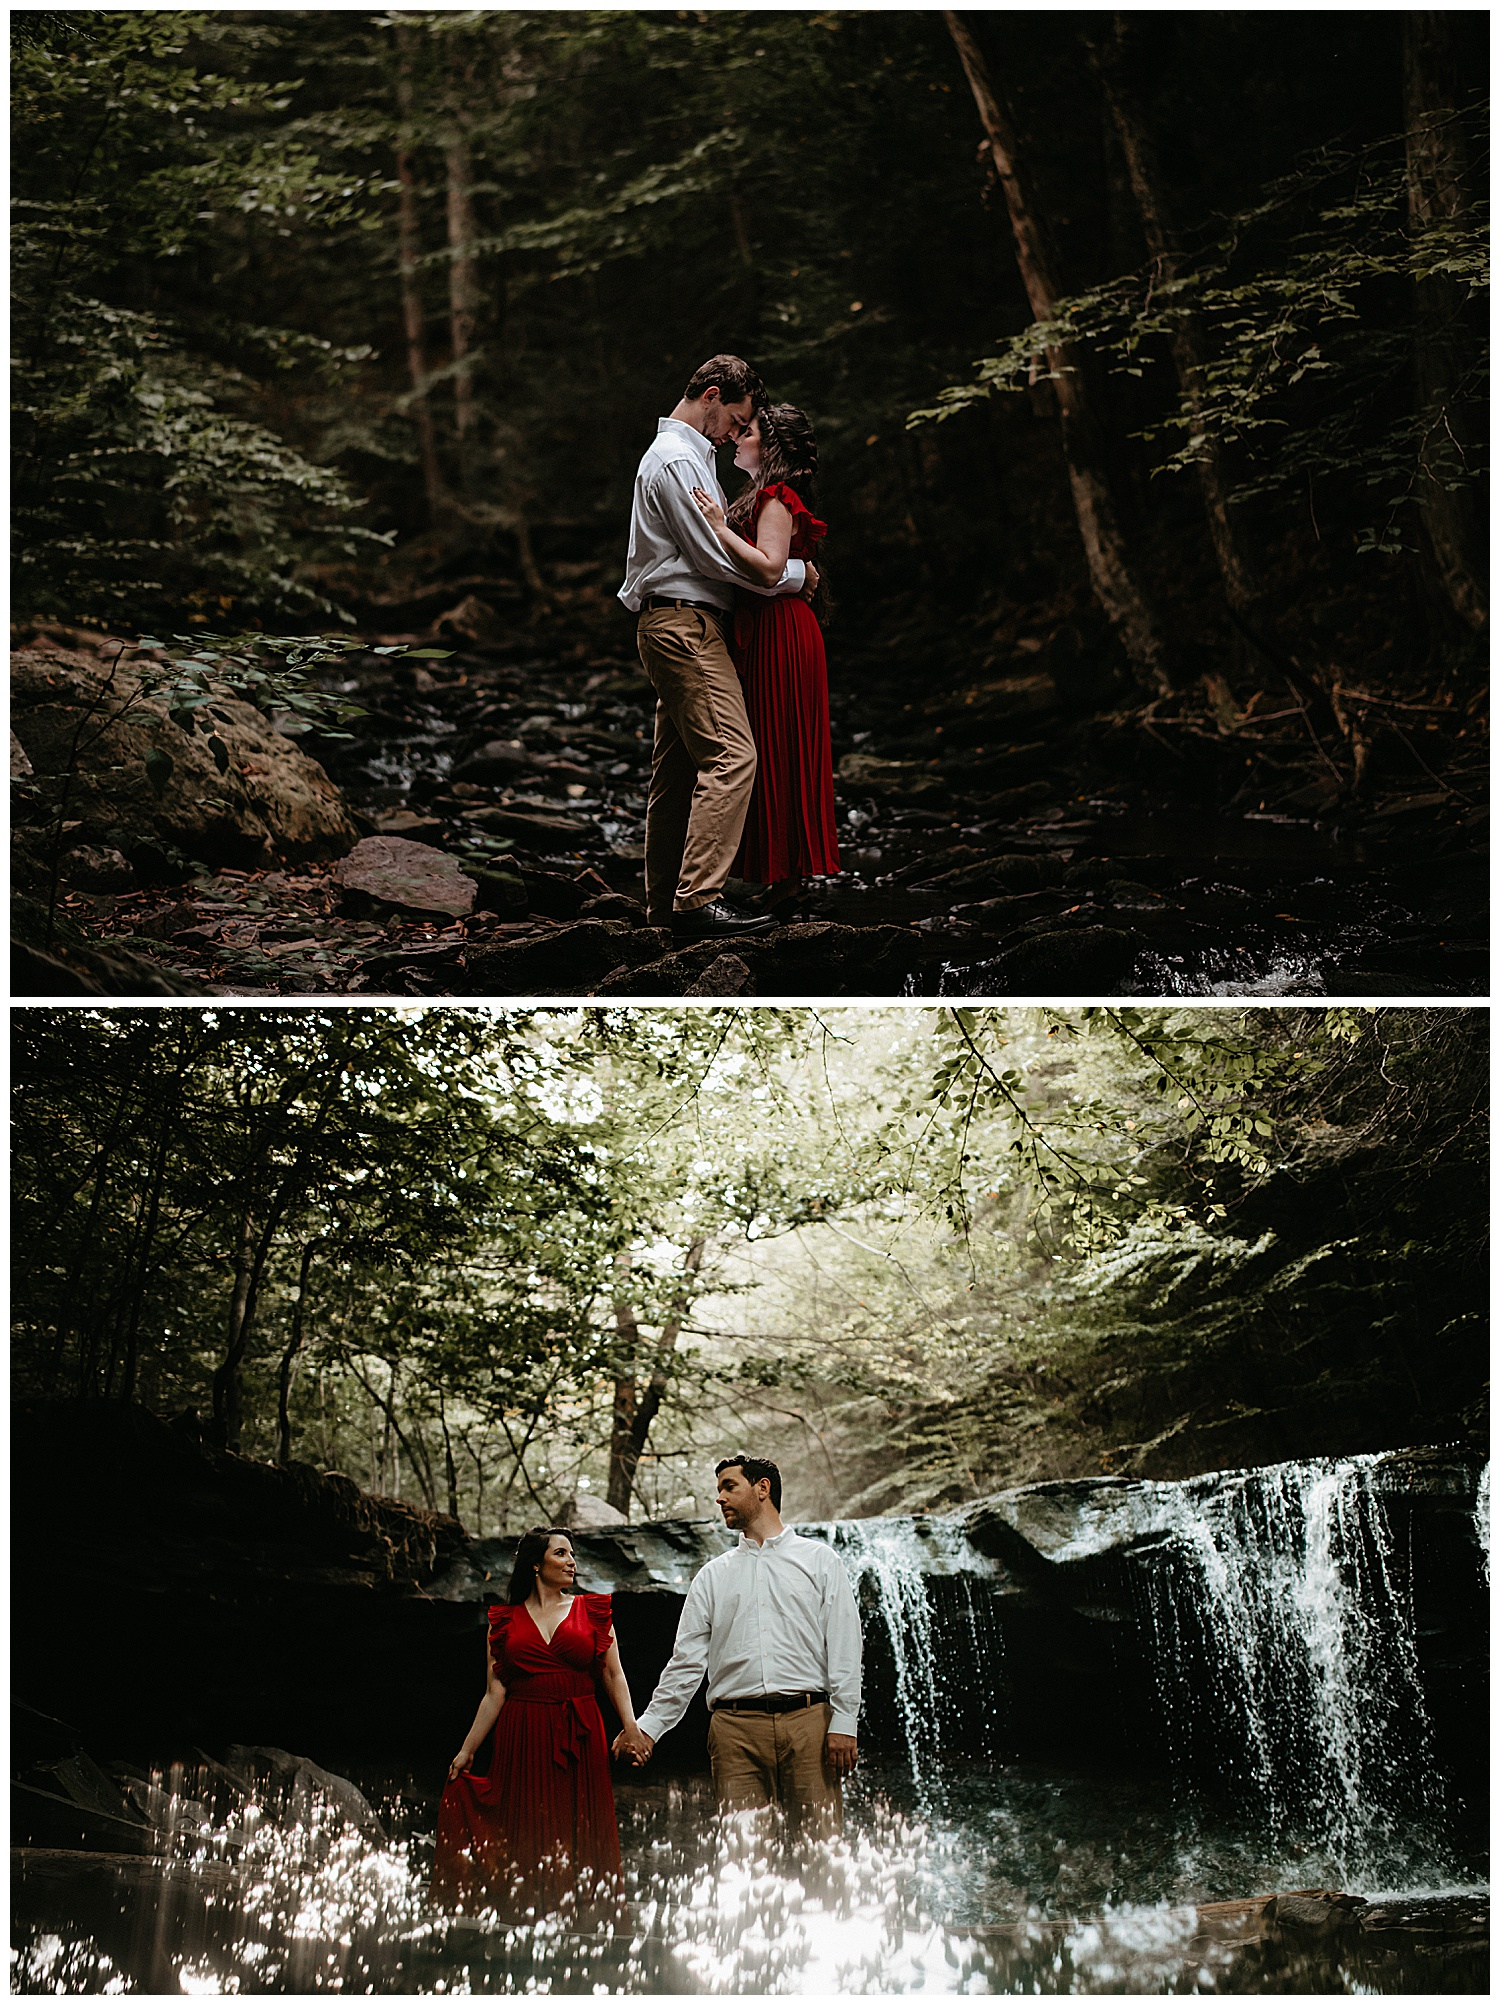 NEPA-Wedding-Engagement-Photographer-at-Ricketts-Glen-State-Park-Benton-PA_0012.jpg